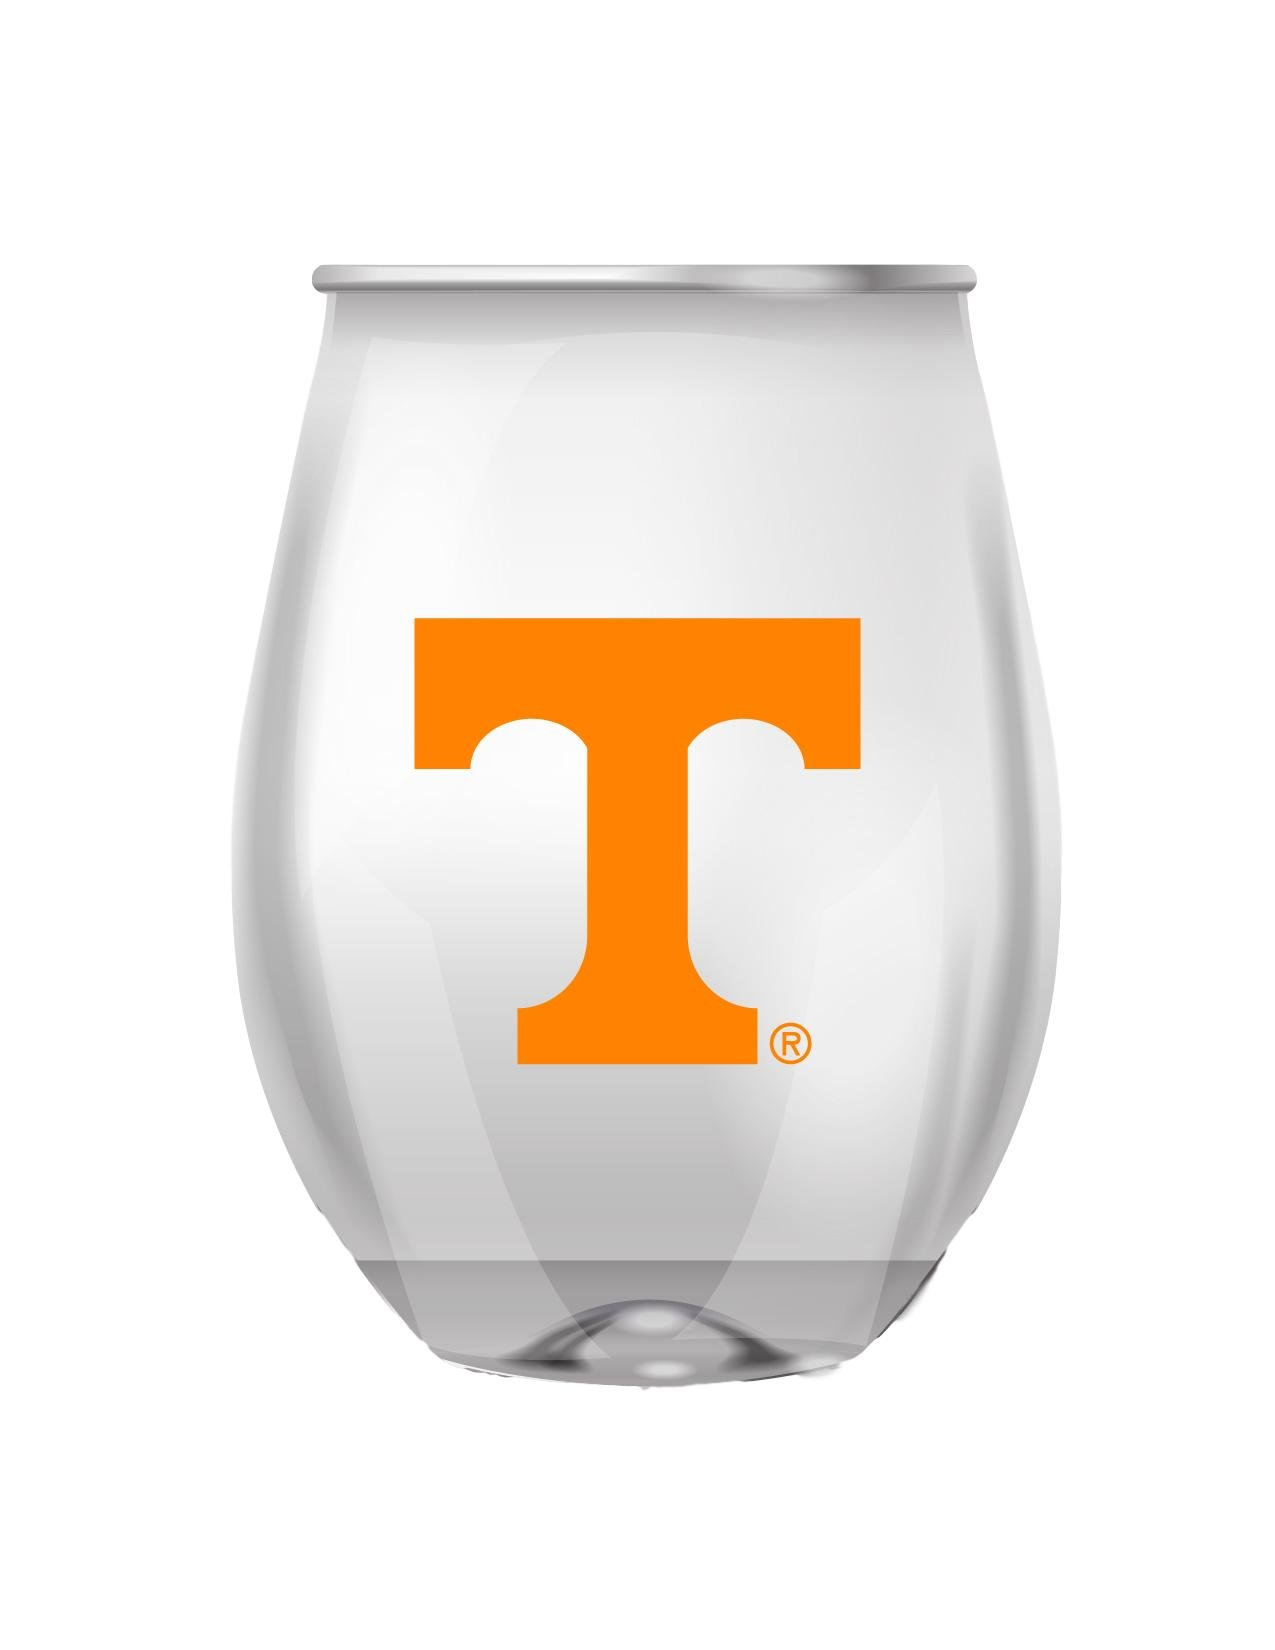 Tennessee Stemless Shatterproof Heavy Duty Wine or Beverage Glass Set of 4